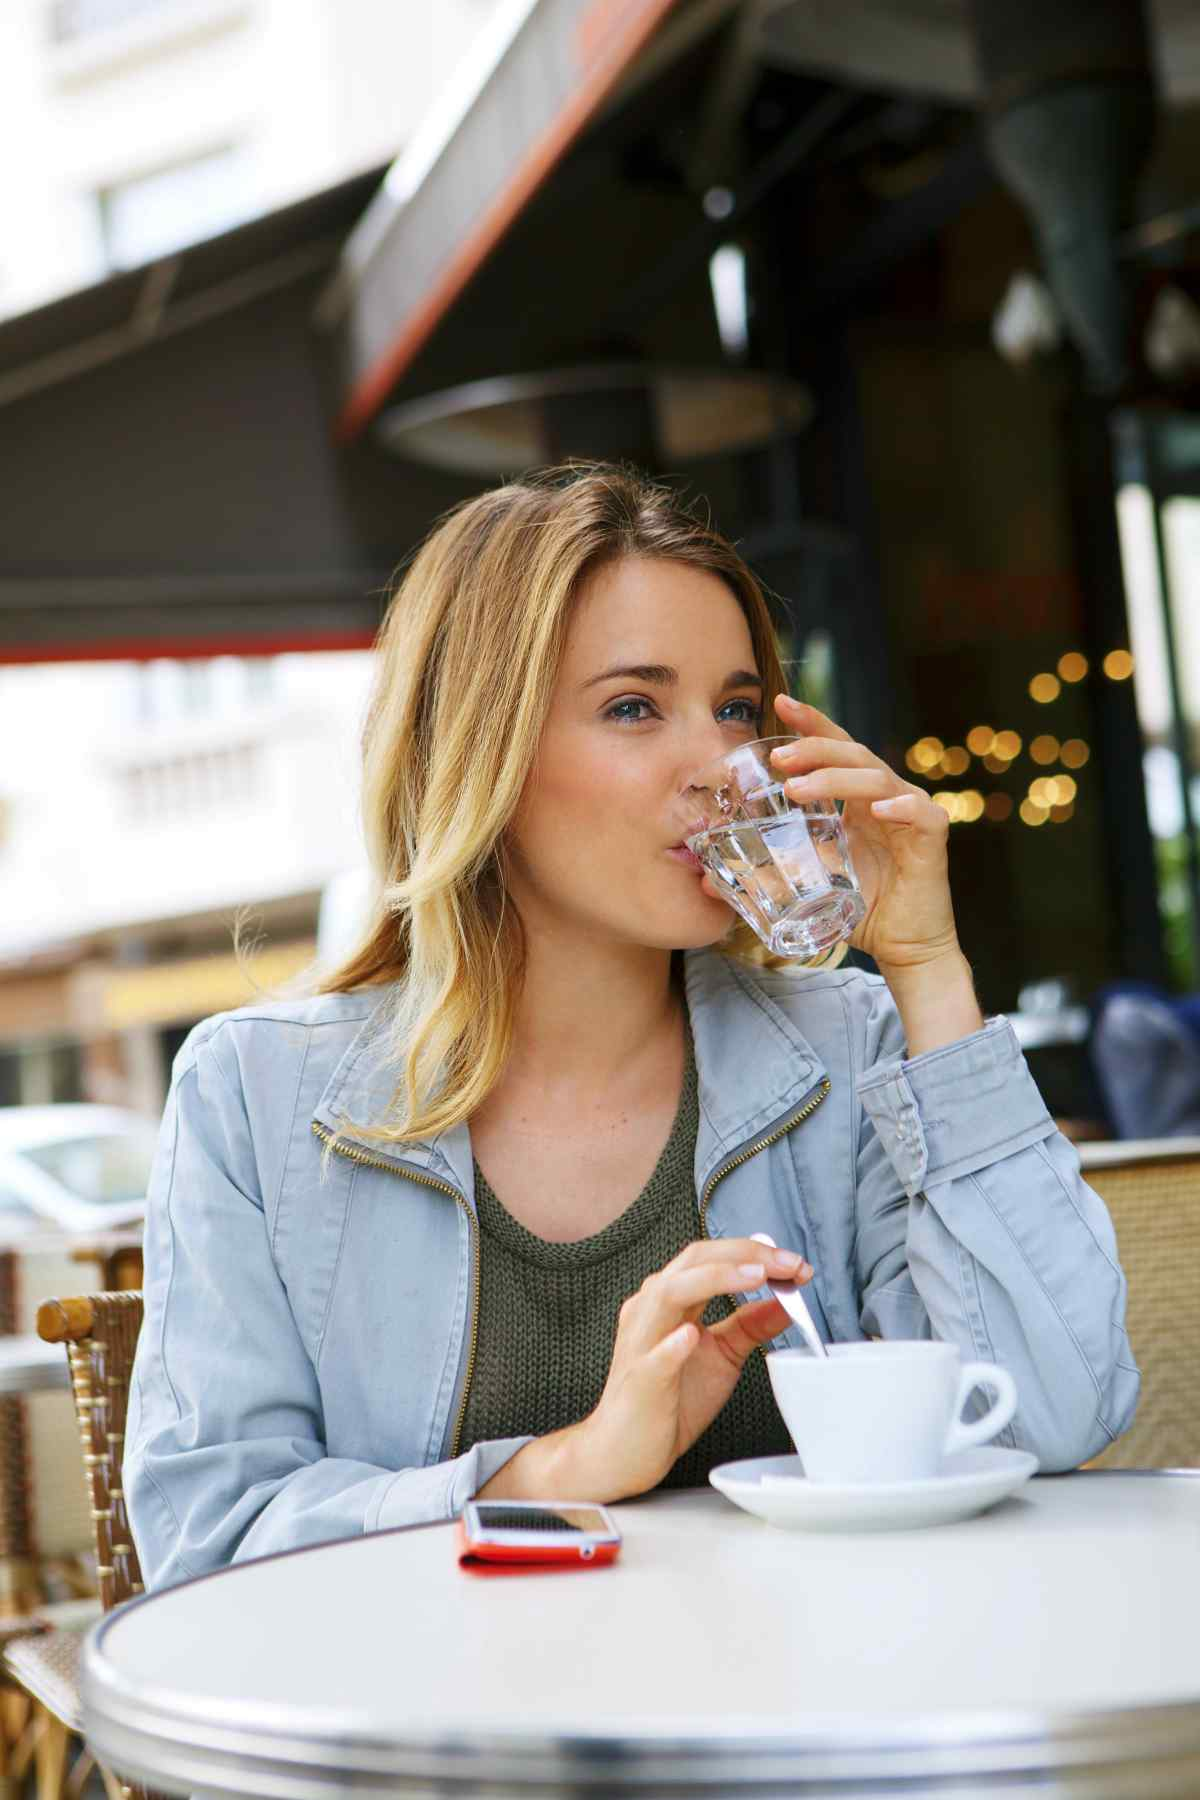 Coffee Shop, Outdoor Tables | Ways To Drink More Water This Year